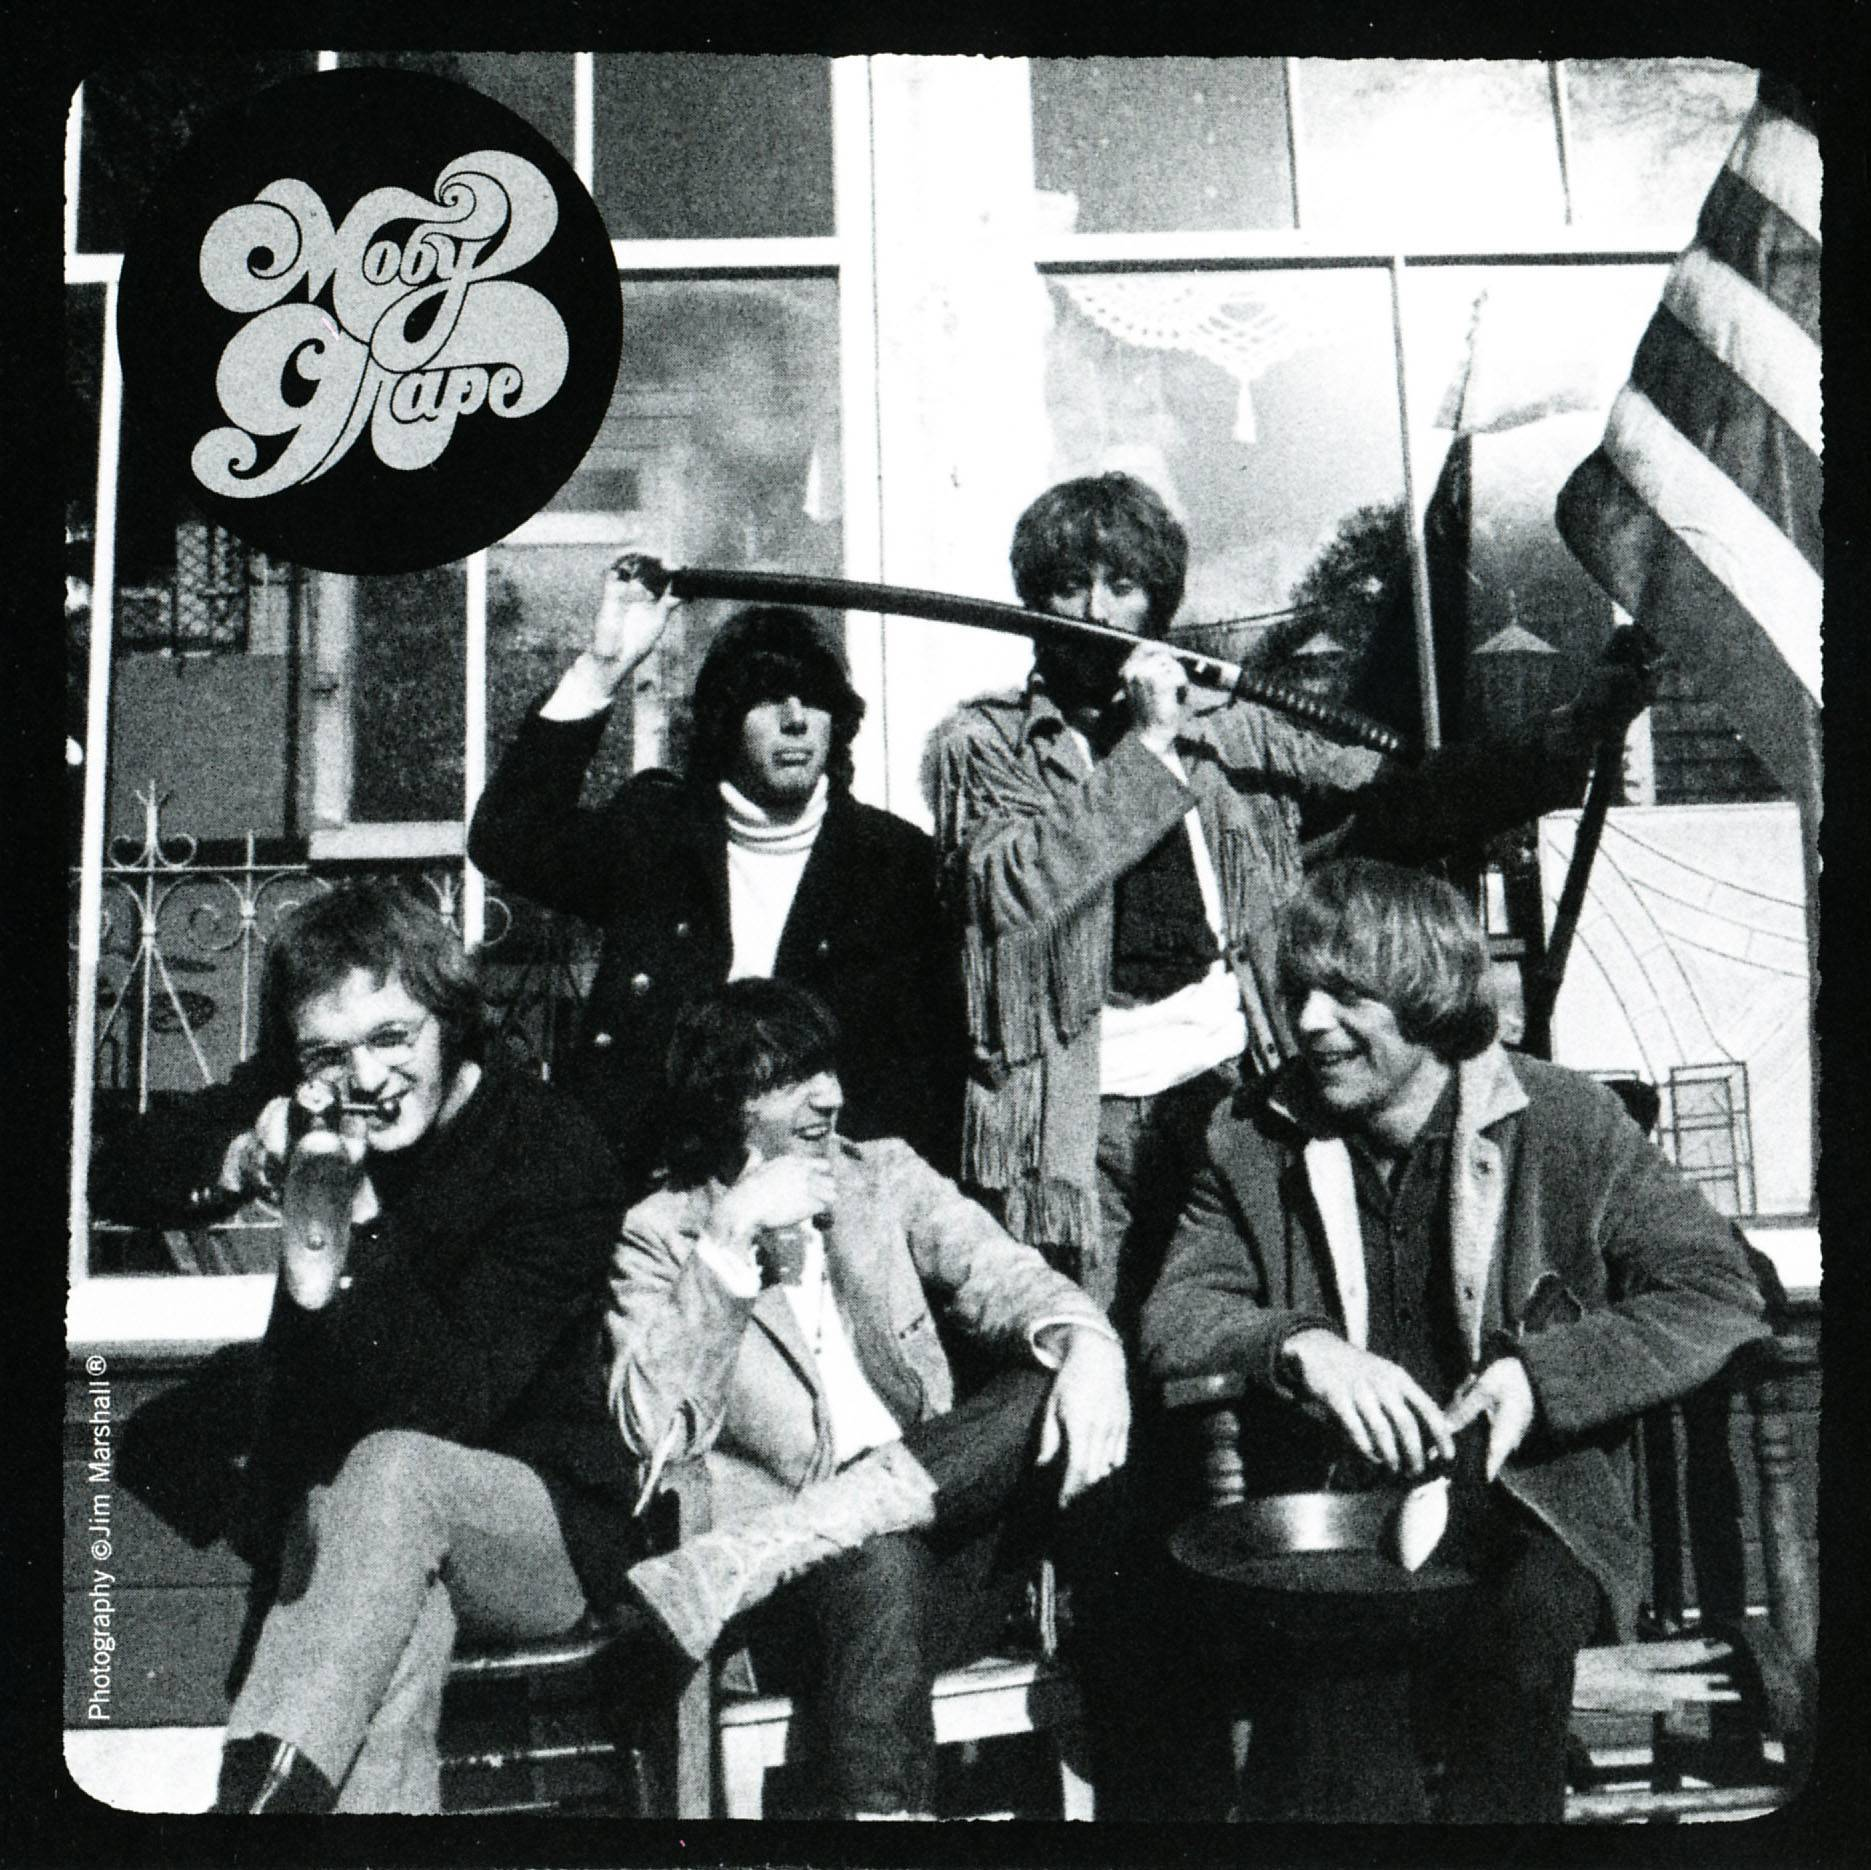 Moby Grape - Moby Grape (1967) Expanded Remastered 2007